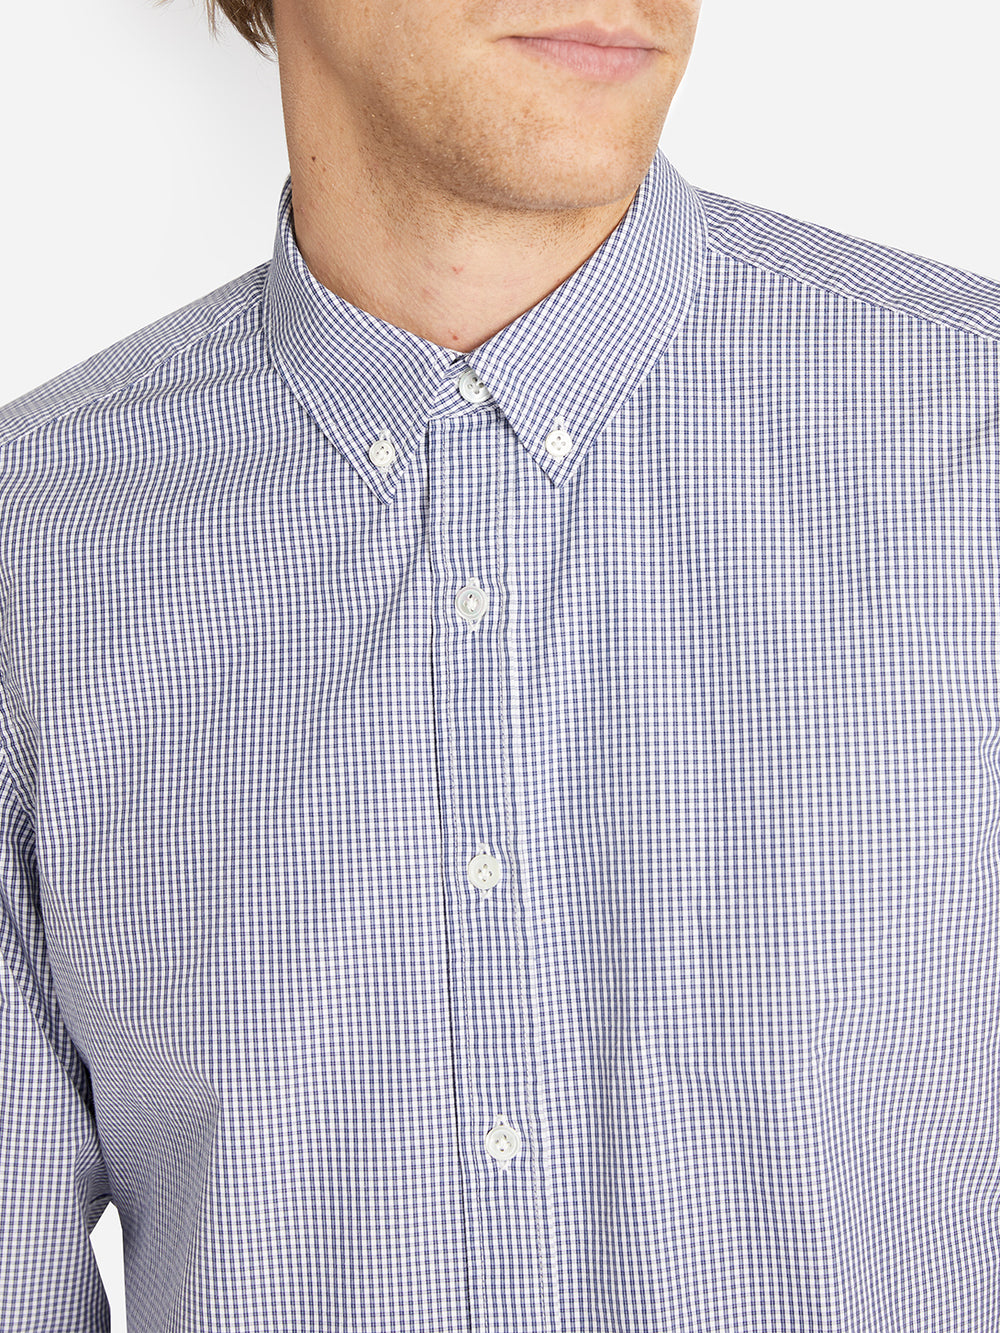 ARTHUR SHIRT NAVY MINI CHECK HERITAGE LINE